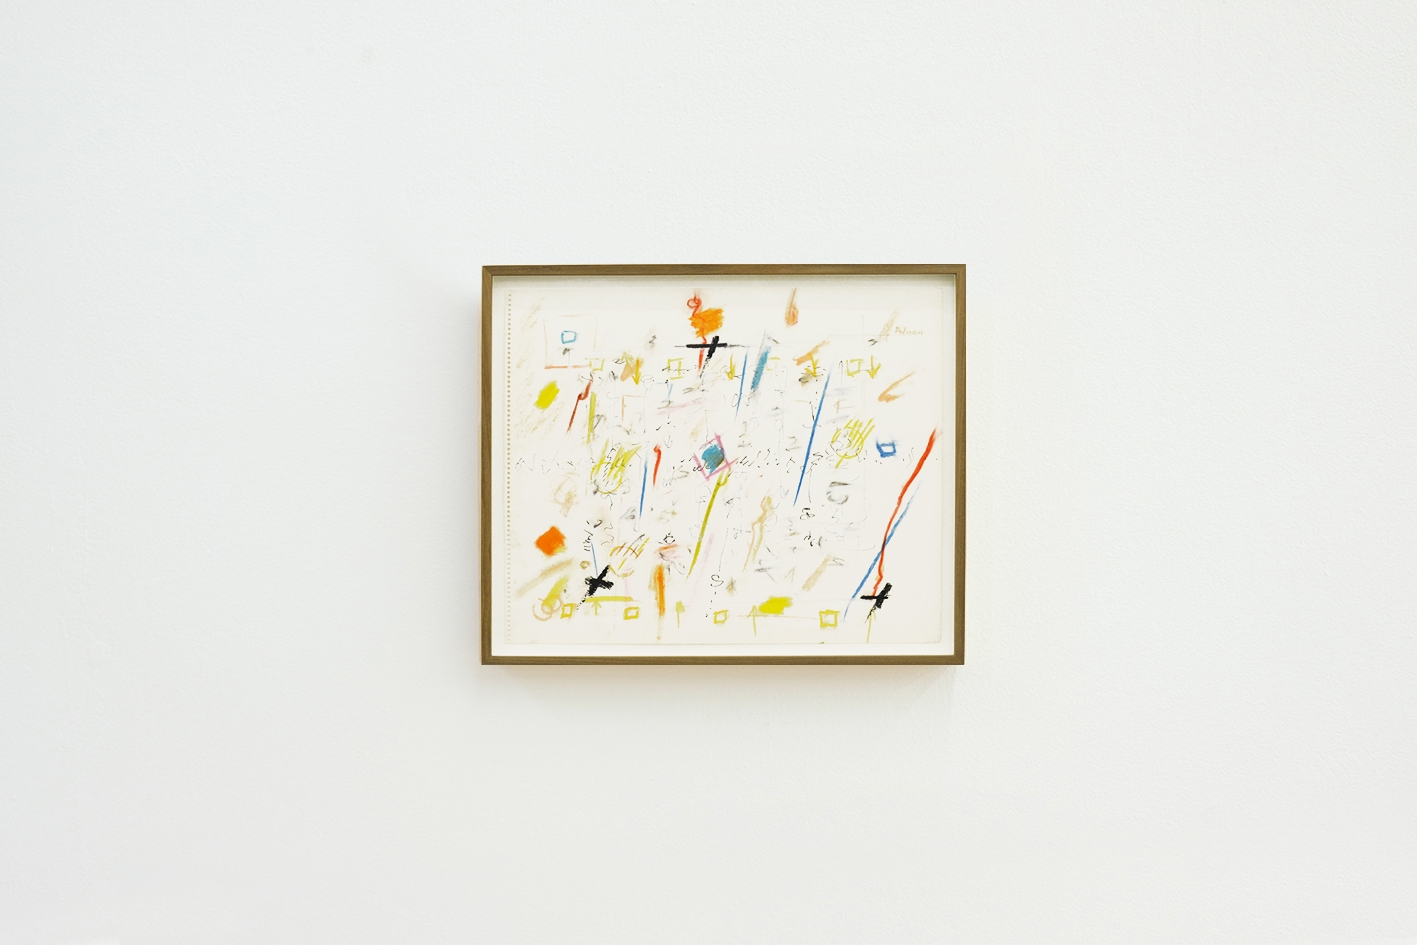 Untitled, 1990, Crayon and ink on paper, 37 x 45.4 cm